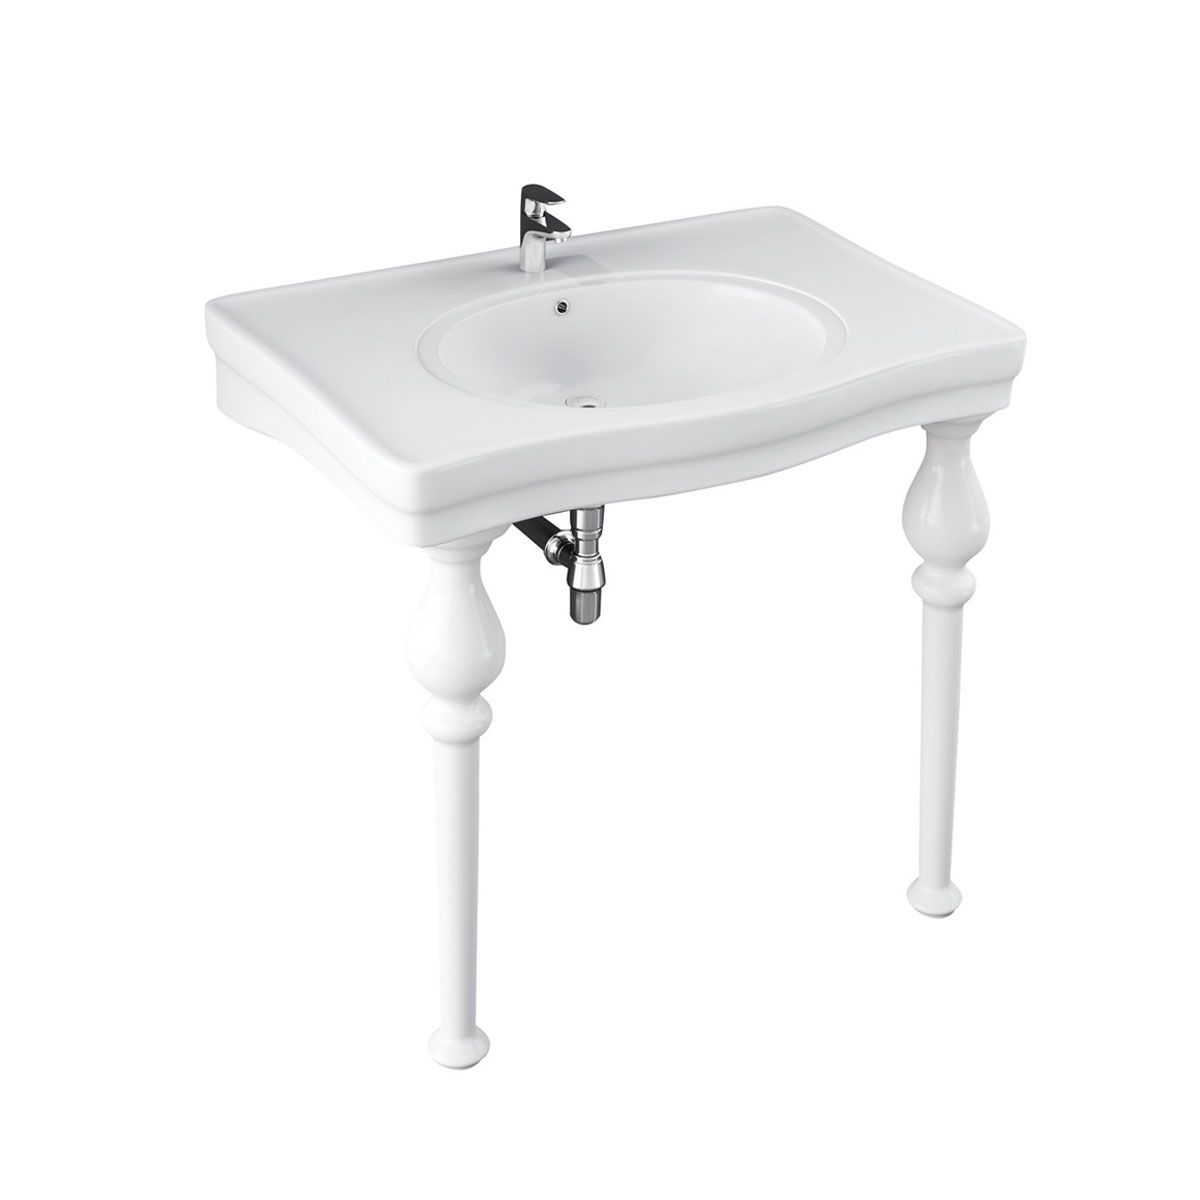 Frontline Holborn 3 Tap Hole Console Basin with Optional Ceramic Legs 845mm